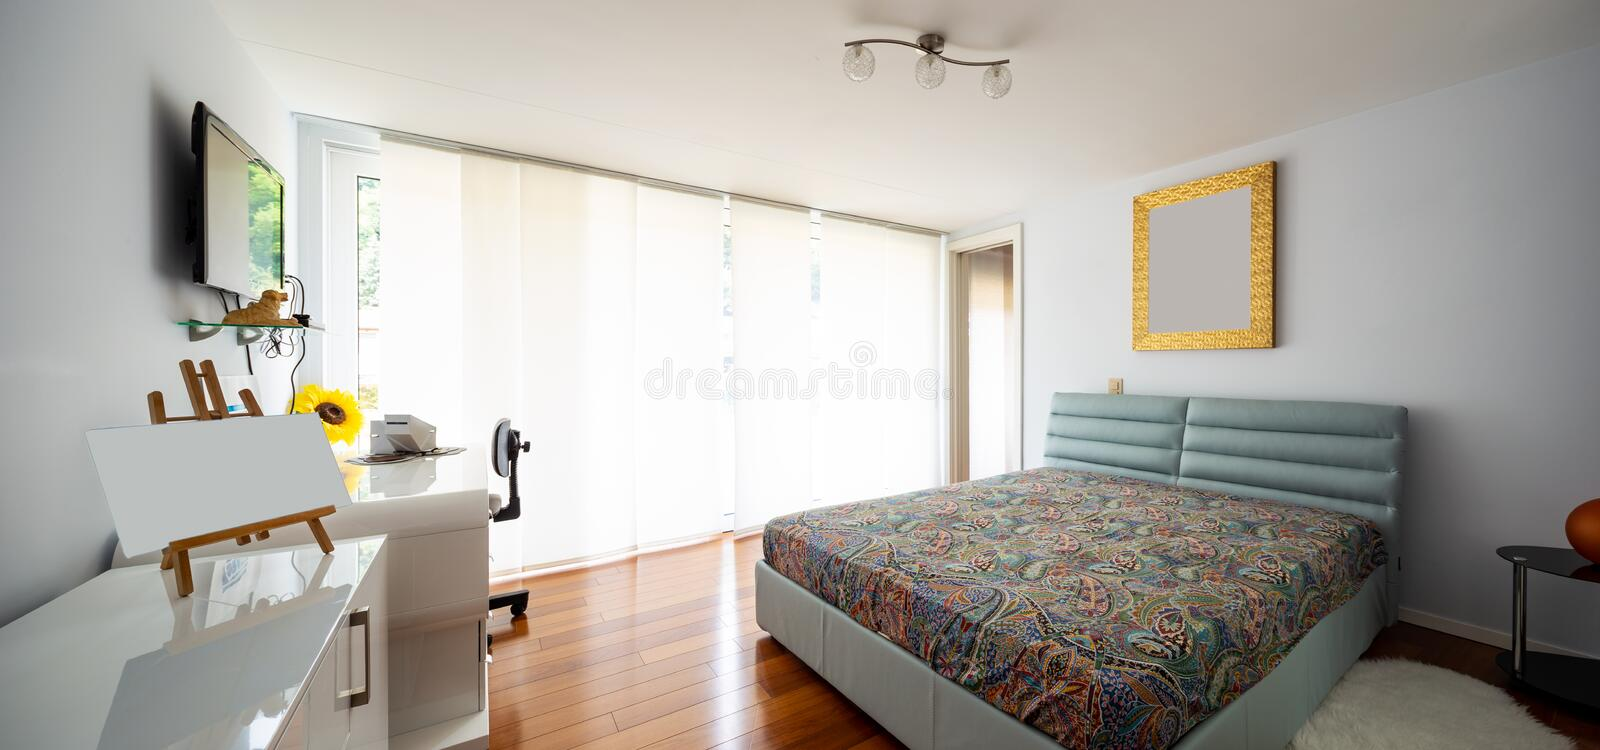 Bedroom with private bathroom in the room. Nobody inside royalty free stock photo